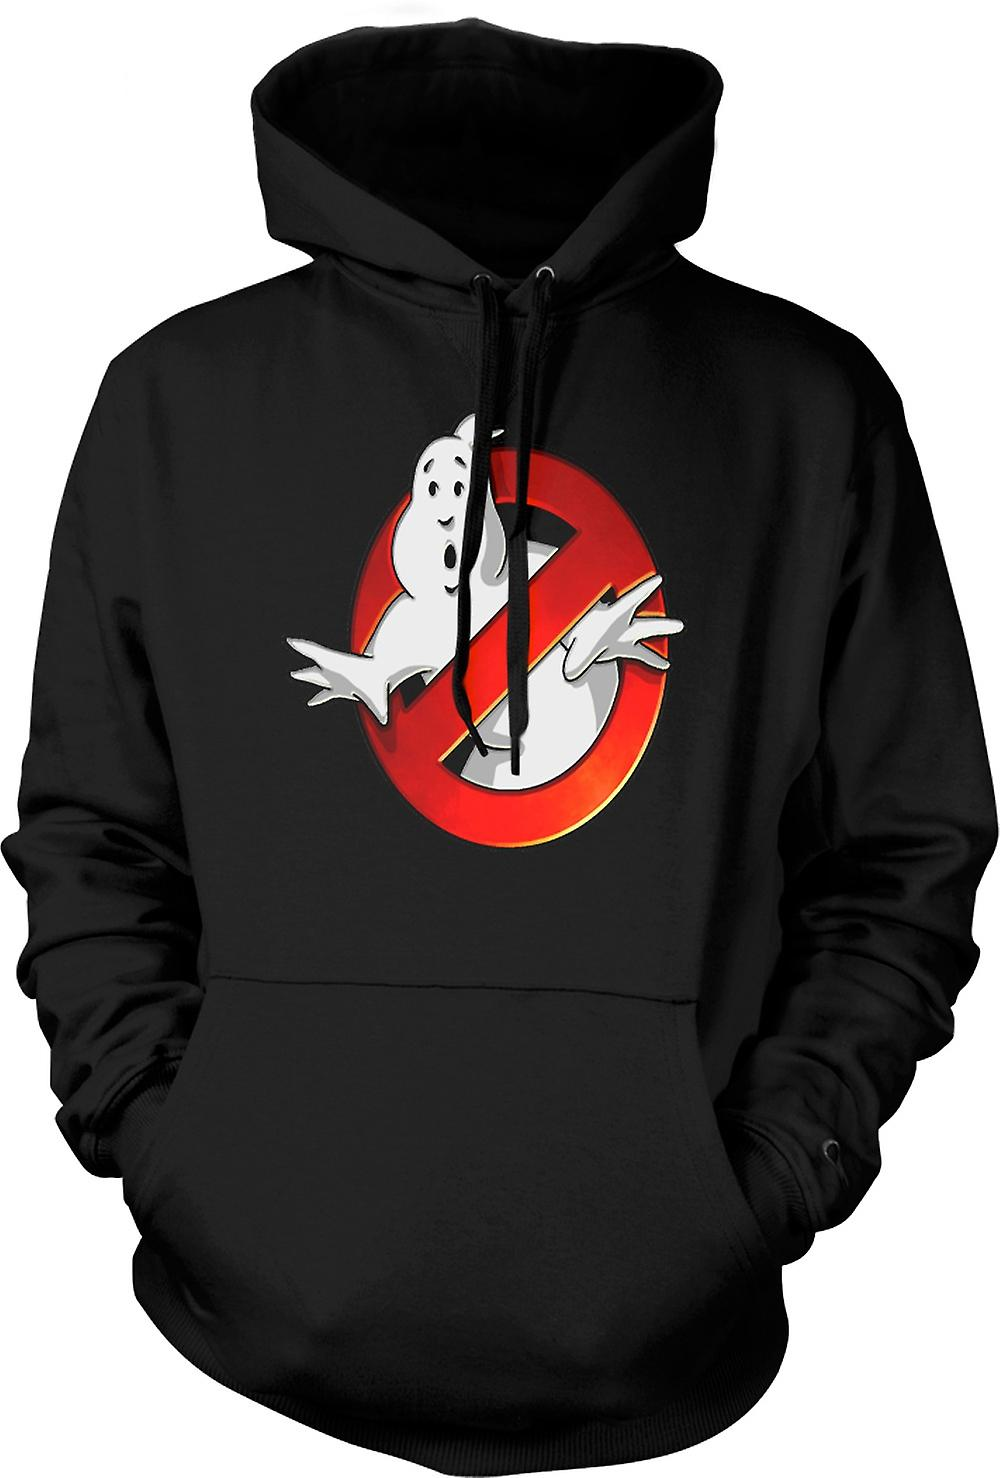 Mens Hoodie - Ghostbusters - Logo conici